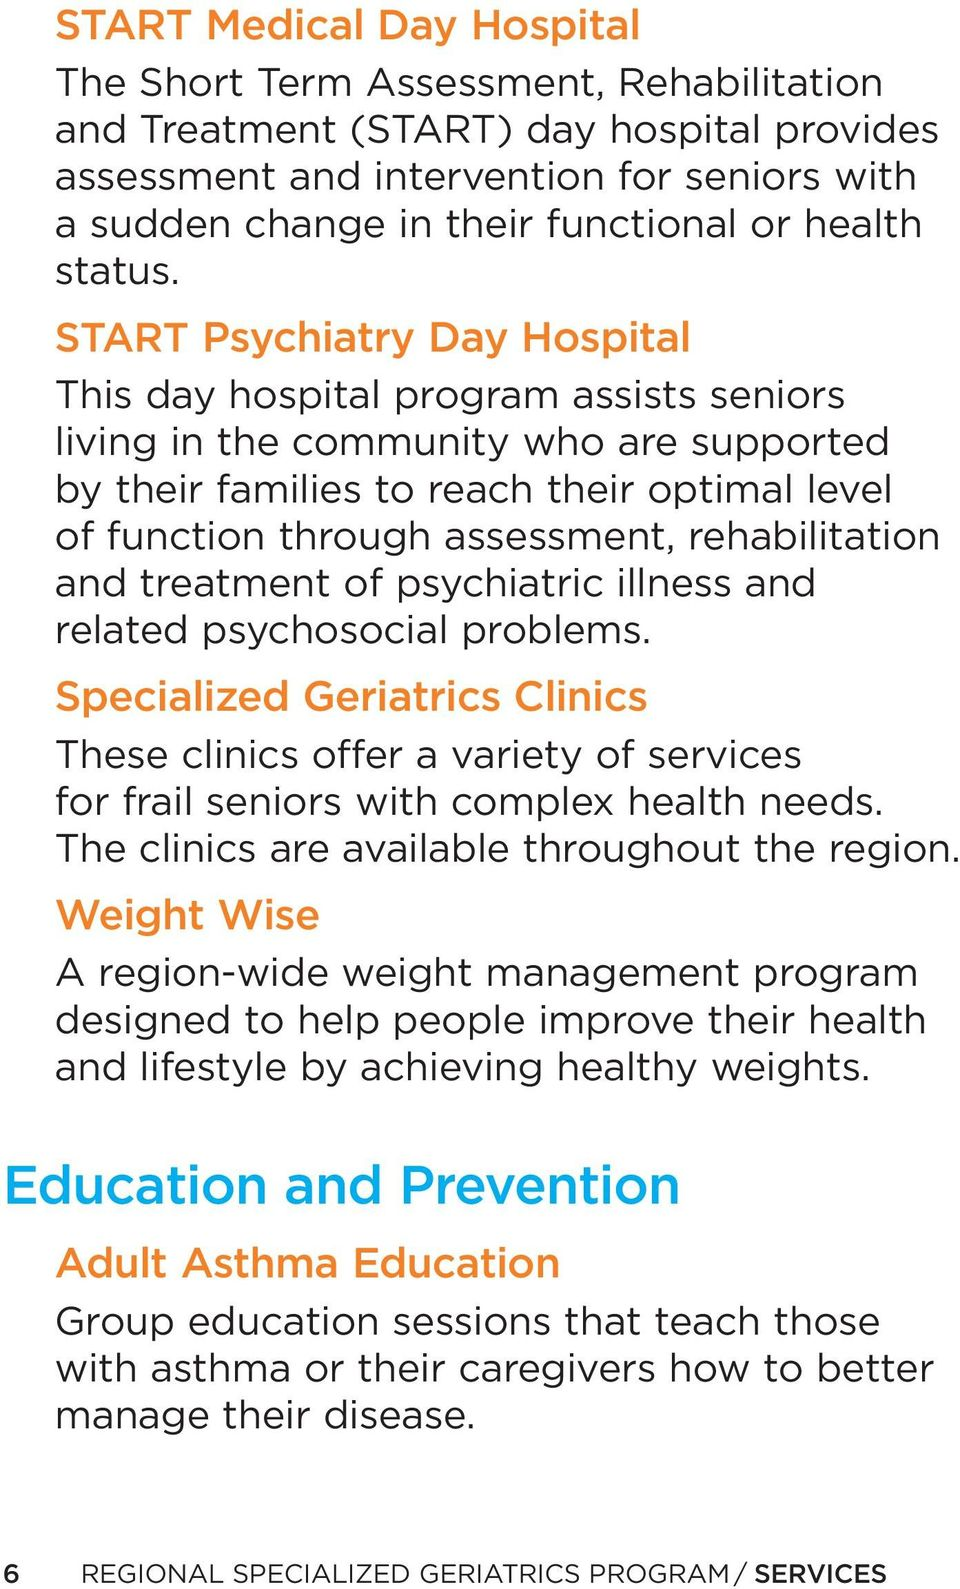 START Psychiatry Day Hospital This day hospital program assists seniors living in the community who are supported by their families to reach their optimal level of function through assessment,